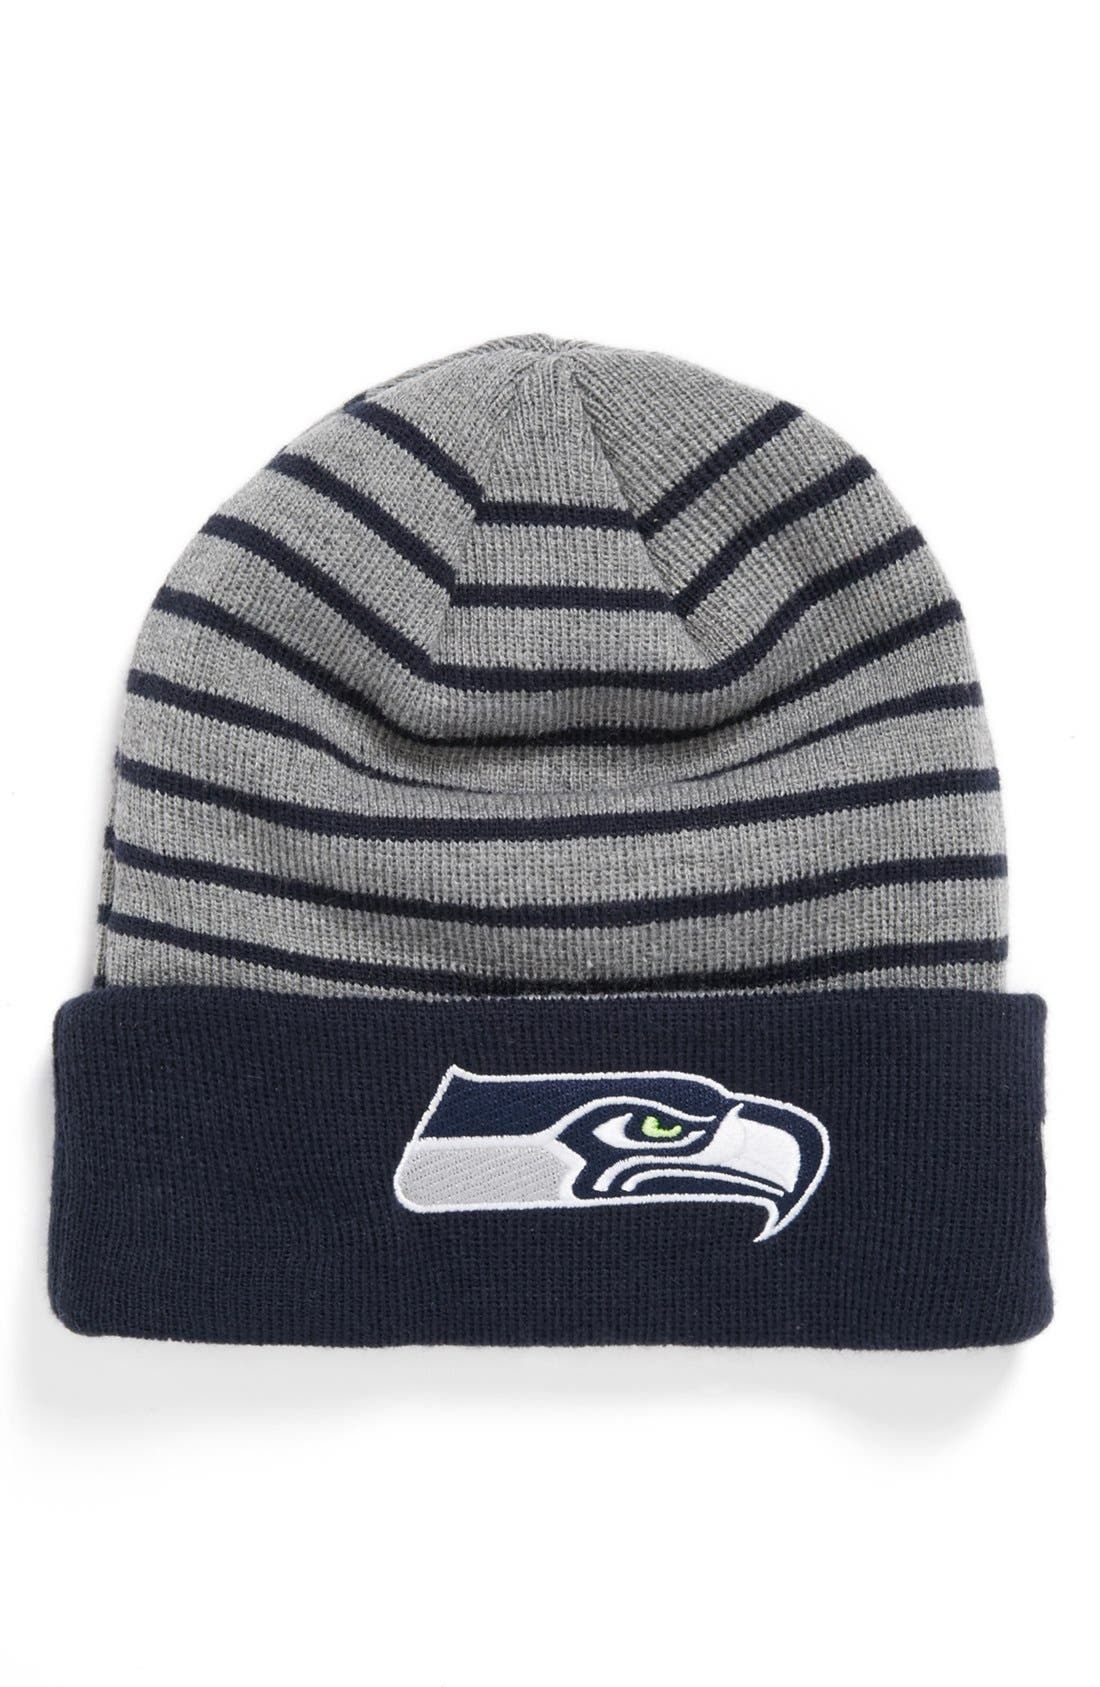 Main Image - New Era Cap 'H Stripe - Seattle Seahawks' Knit Cap